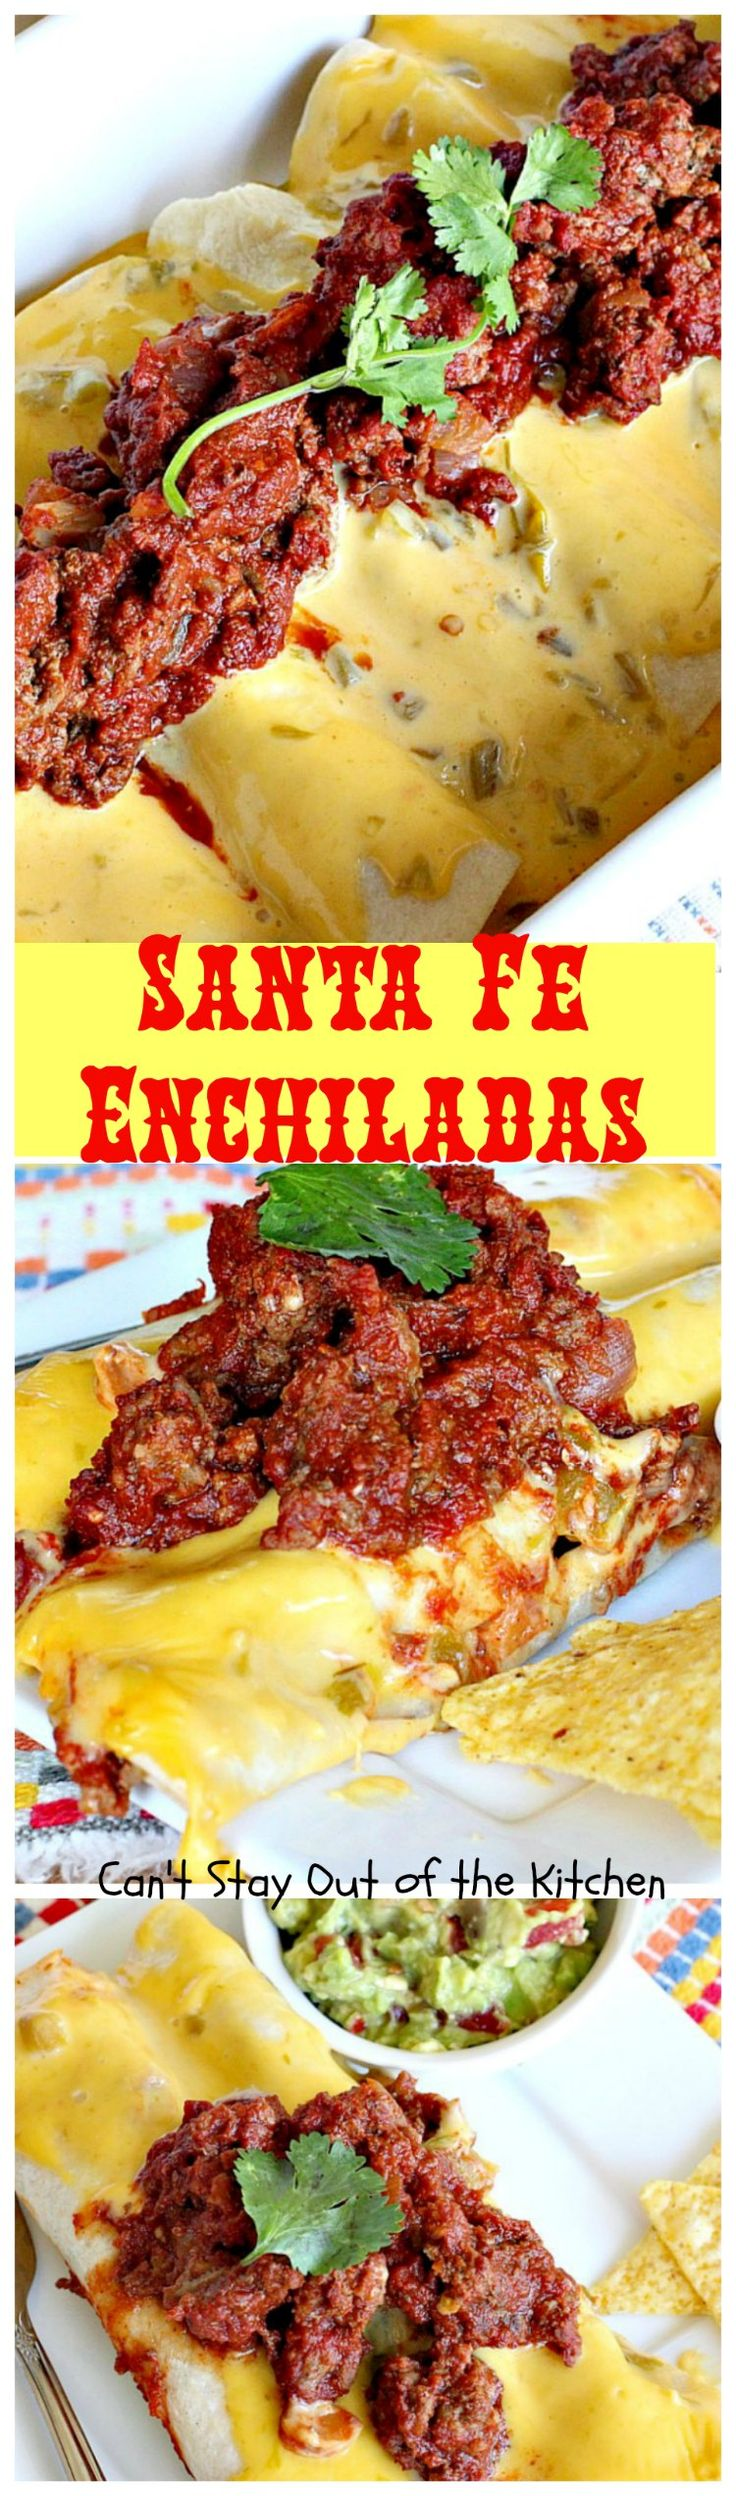 172 best mexican food and recipes images on pinterest cooking santa fe enchiladas cant stay out of the kitchen these delicious mexican entreesmexican food recipesmexican forumfinder Images